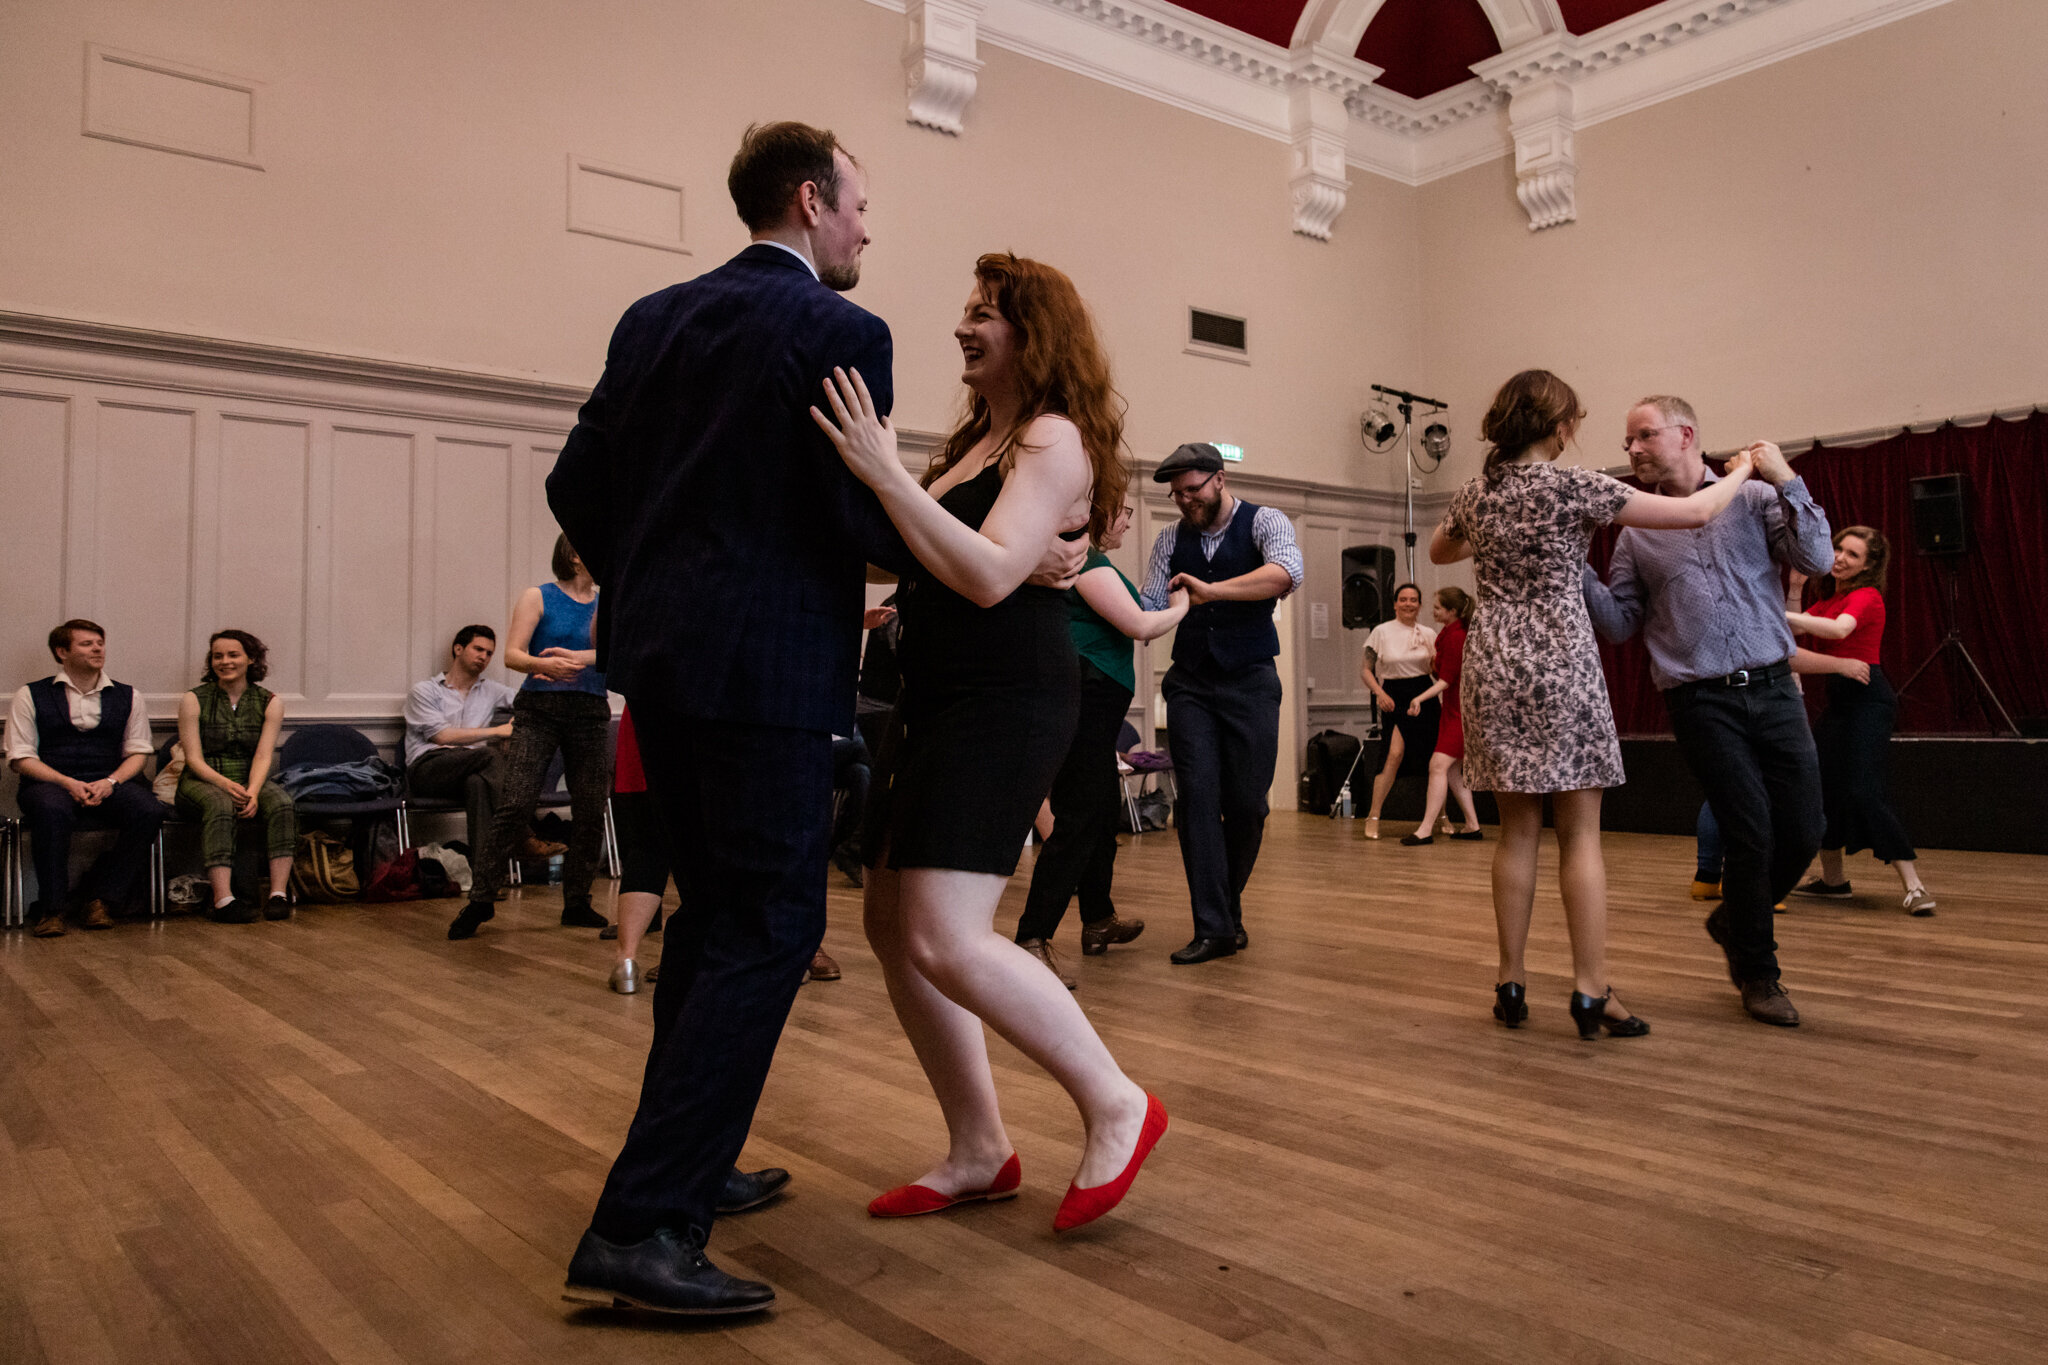 Edinbop Summerhall July 2019-166.jpg